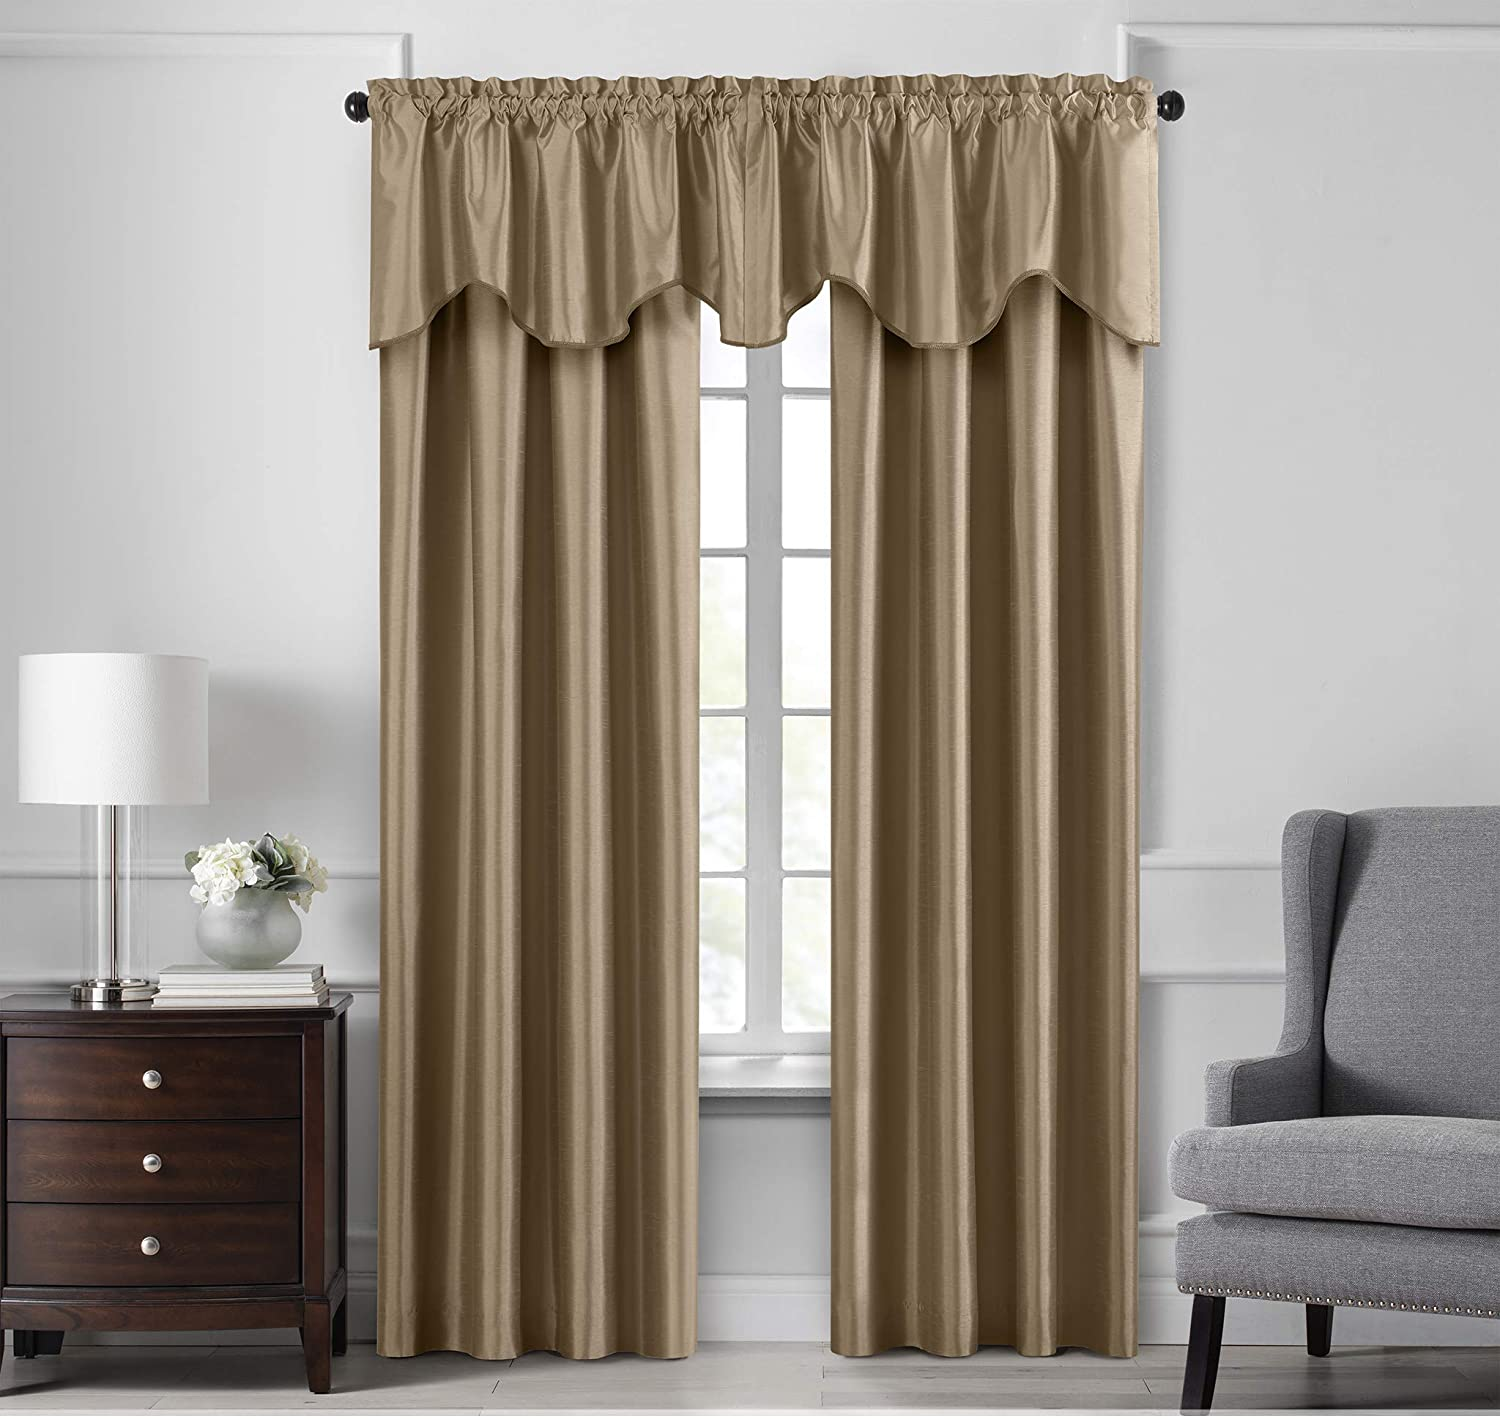 Elrene Home Fashions Colette Faux Silk Blackout Window Curtain Panel, 52